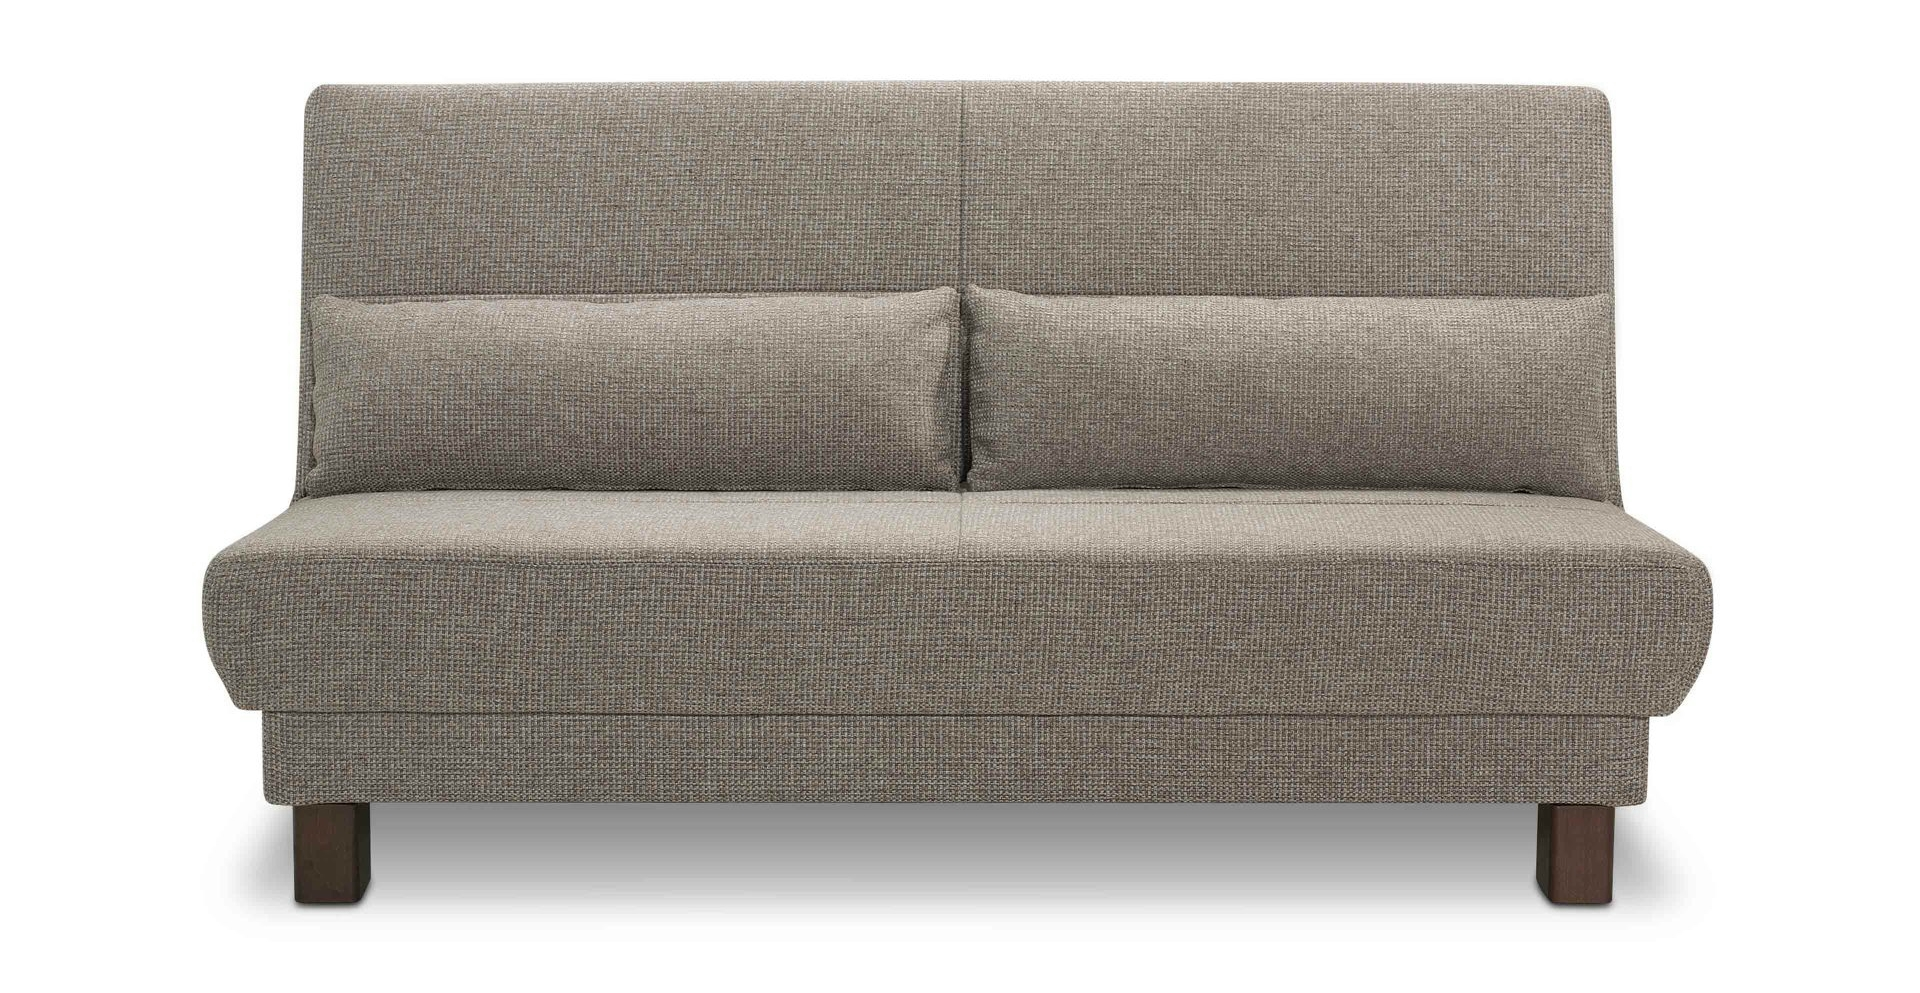 Schlafcouch schlafsofa sitzer schlafcouch bett in grau for Schlafcouch mit boxspring